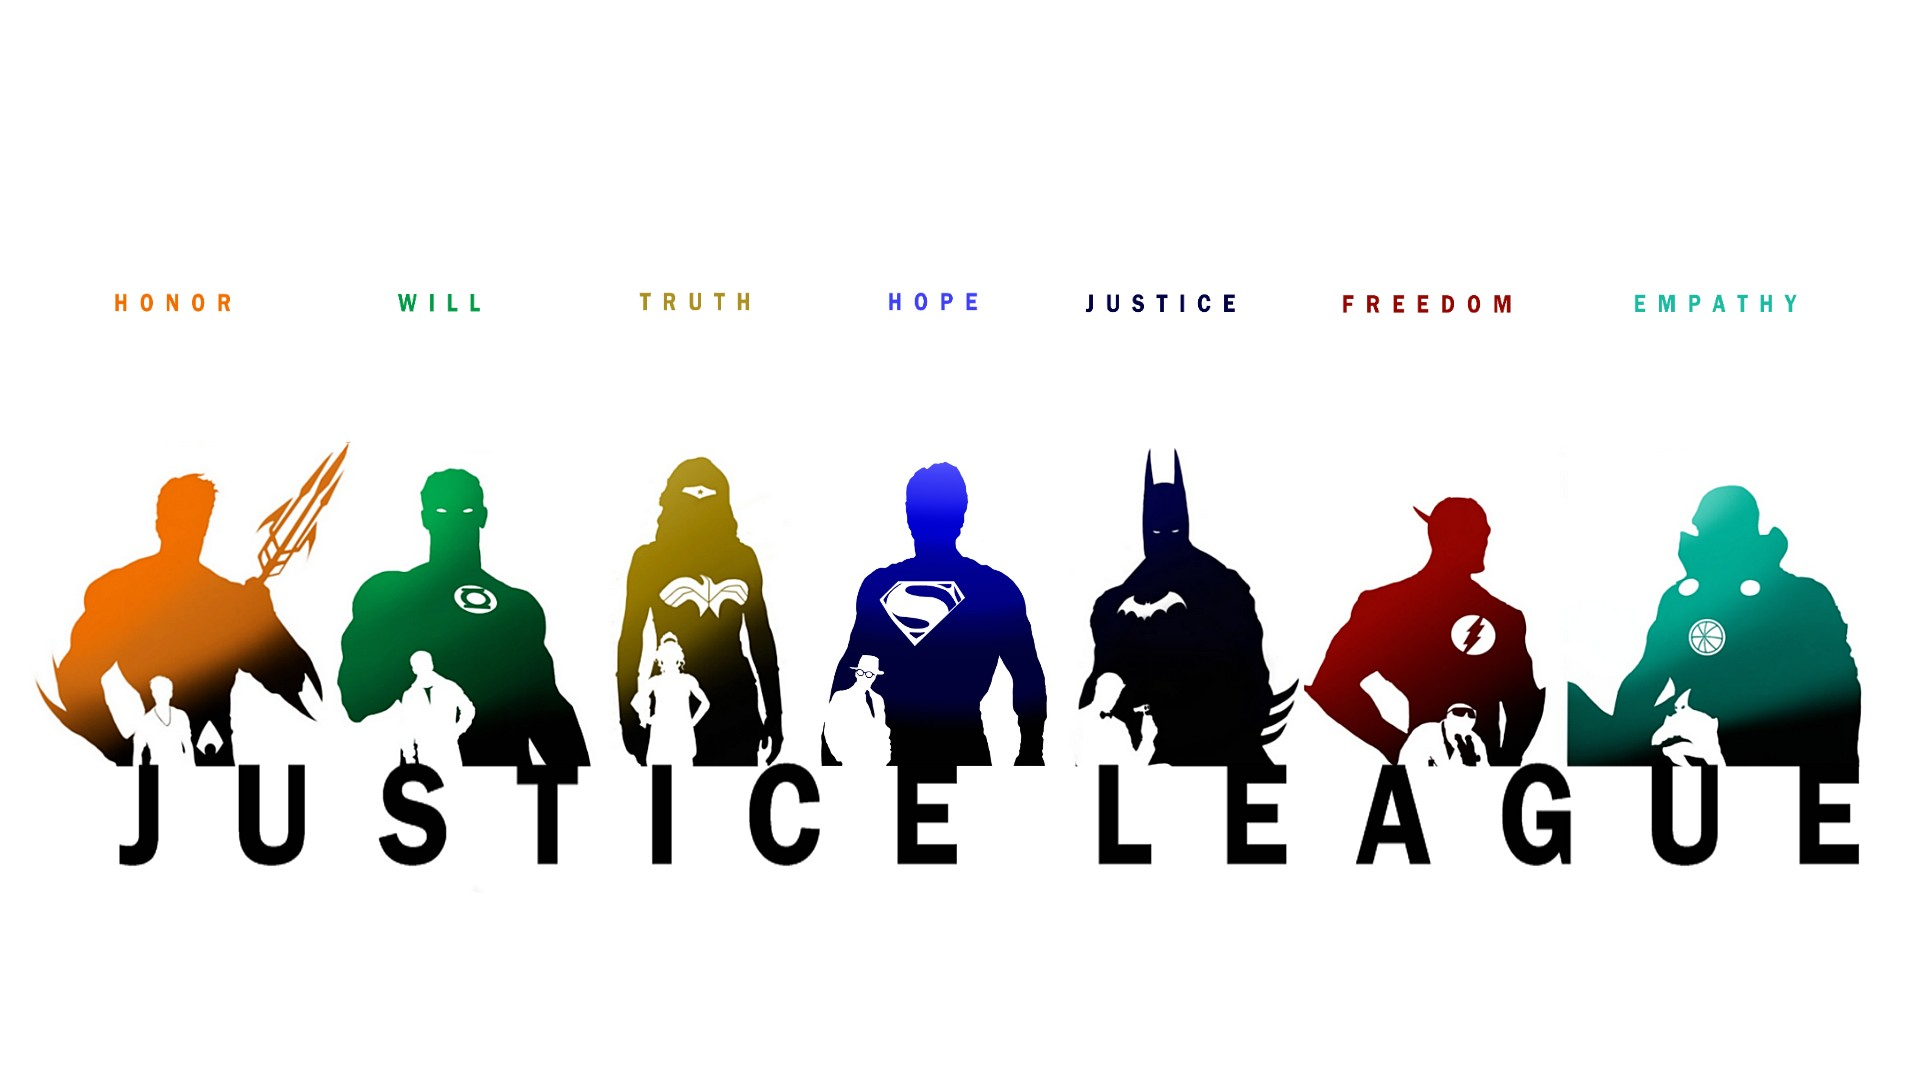 justice league wallpaper ·① download free amazing wallpapers of